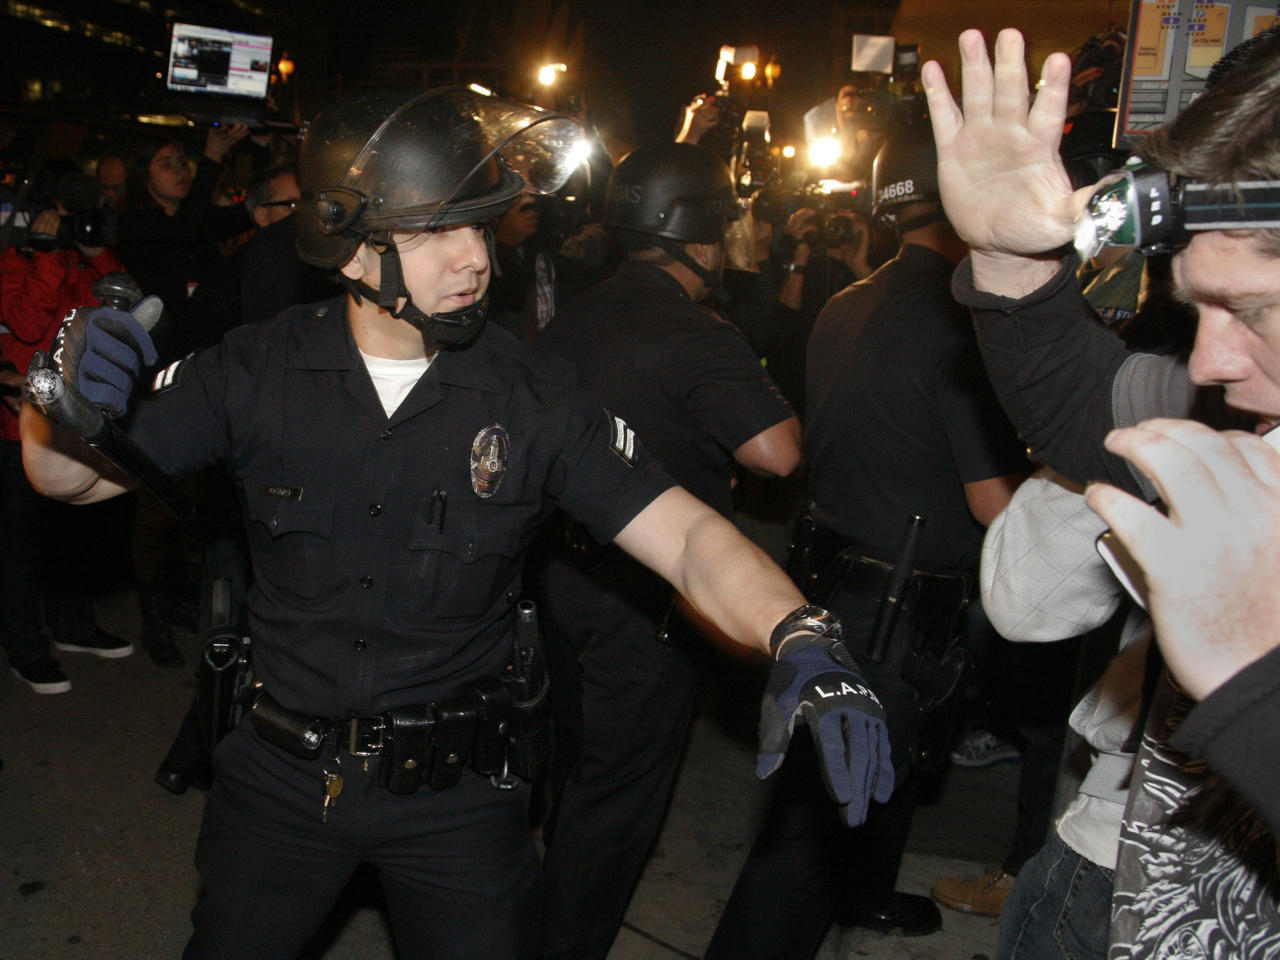 A Los Angeles Police officer orders an anti-Wall Street protester off the street at the Occupy LA camp in Los Angeles on Monday, Nov. 28, 2011. Los Angeles Mayor Antonio Villaraigosa stated Friday that the protestors's campsite will be dismantled, beginning at 12:01 a.m., Monday, but police did not enforce the deadline. (AP Photo/Jason Redmond)